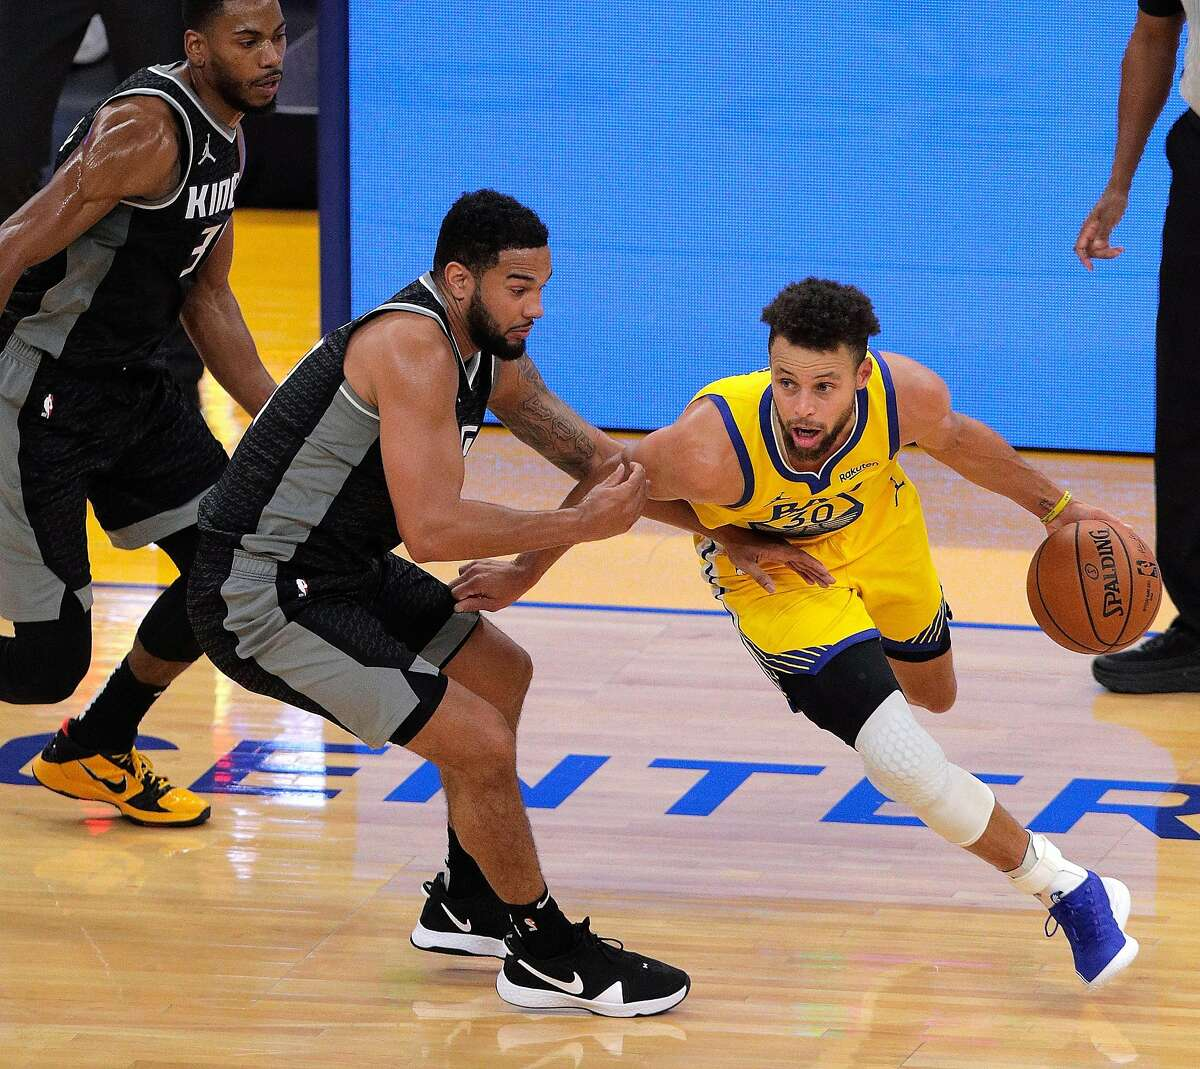 Warriors guard Stephen Curry dribbles around guard Cory Joseph of the Sacramento Kings in the first half of Golden State's win at Chase Center.